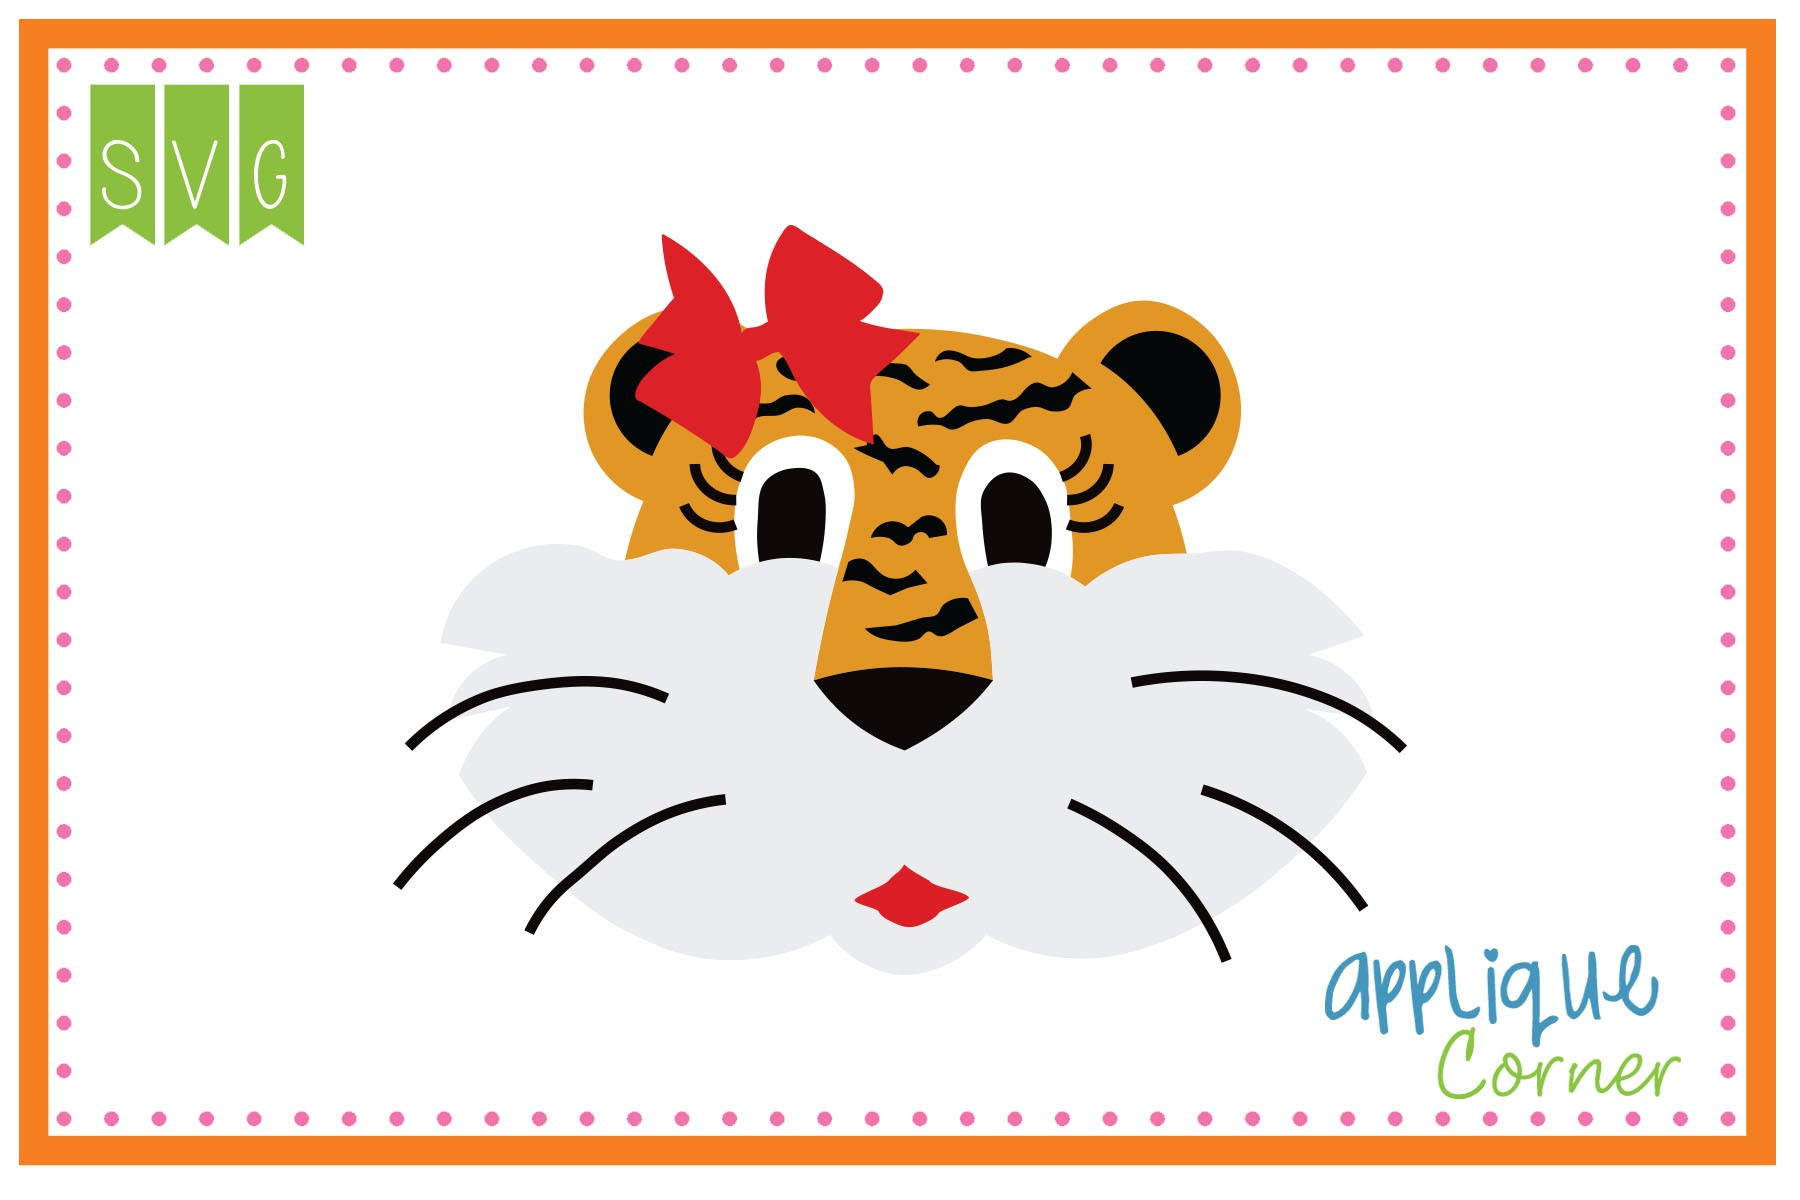 Applique Corner Tiger Head with Stripes Girl Cuttable SVG Clipart.